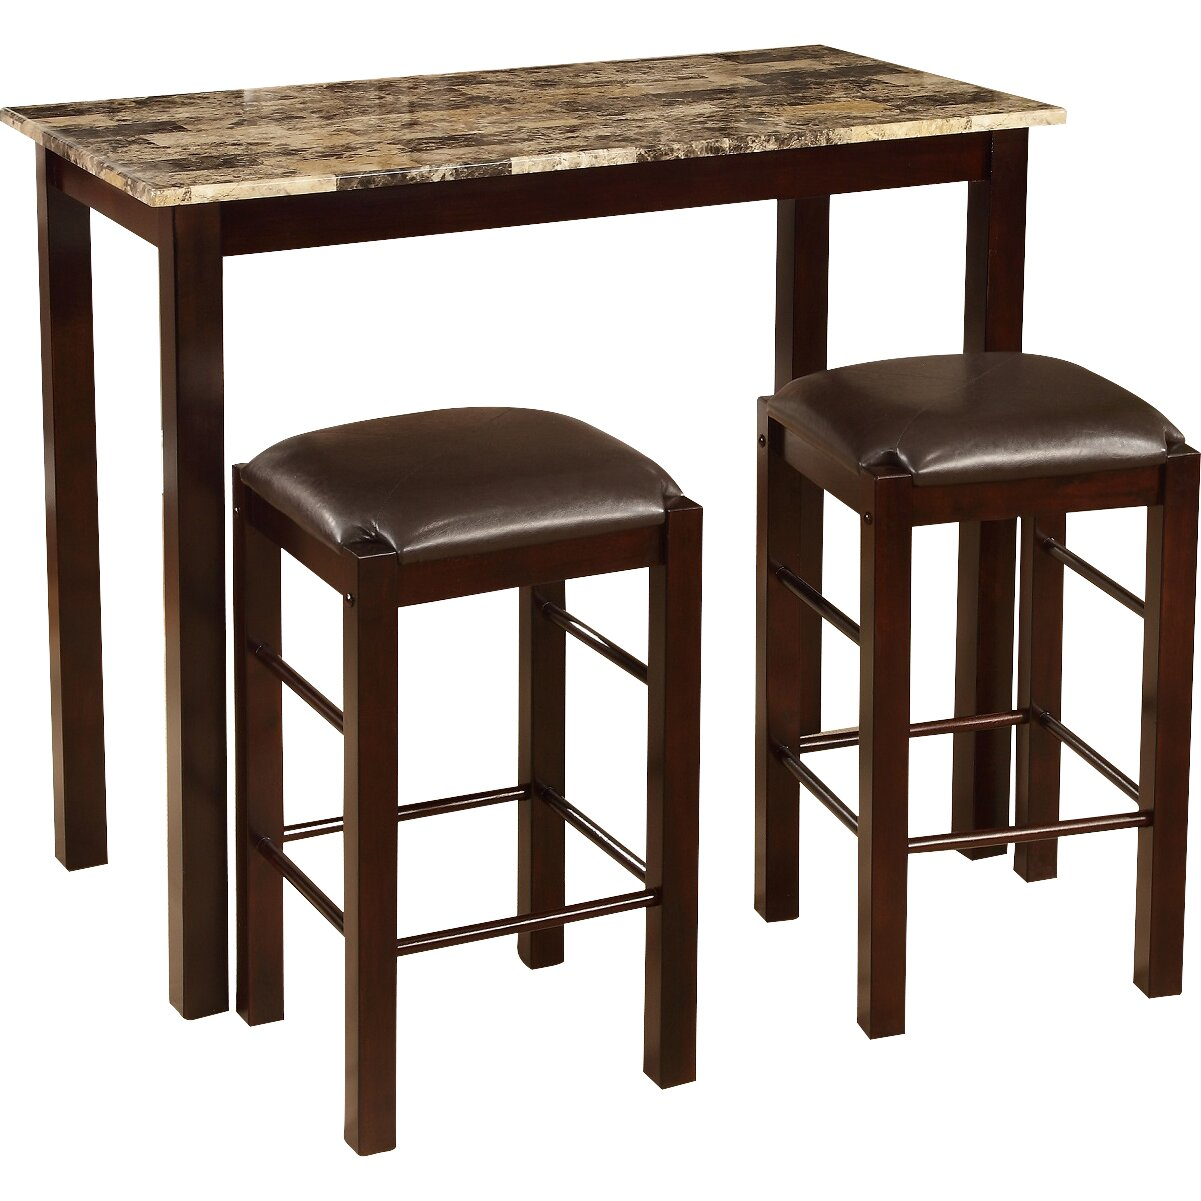 Roundhill Furniture Brando 3 Piece Counter Height Dining